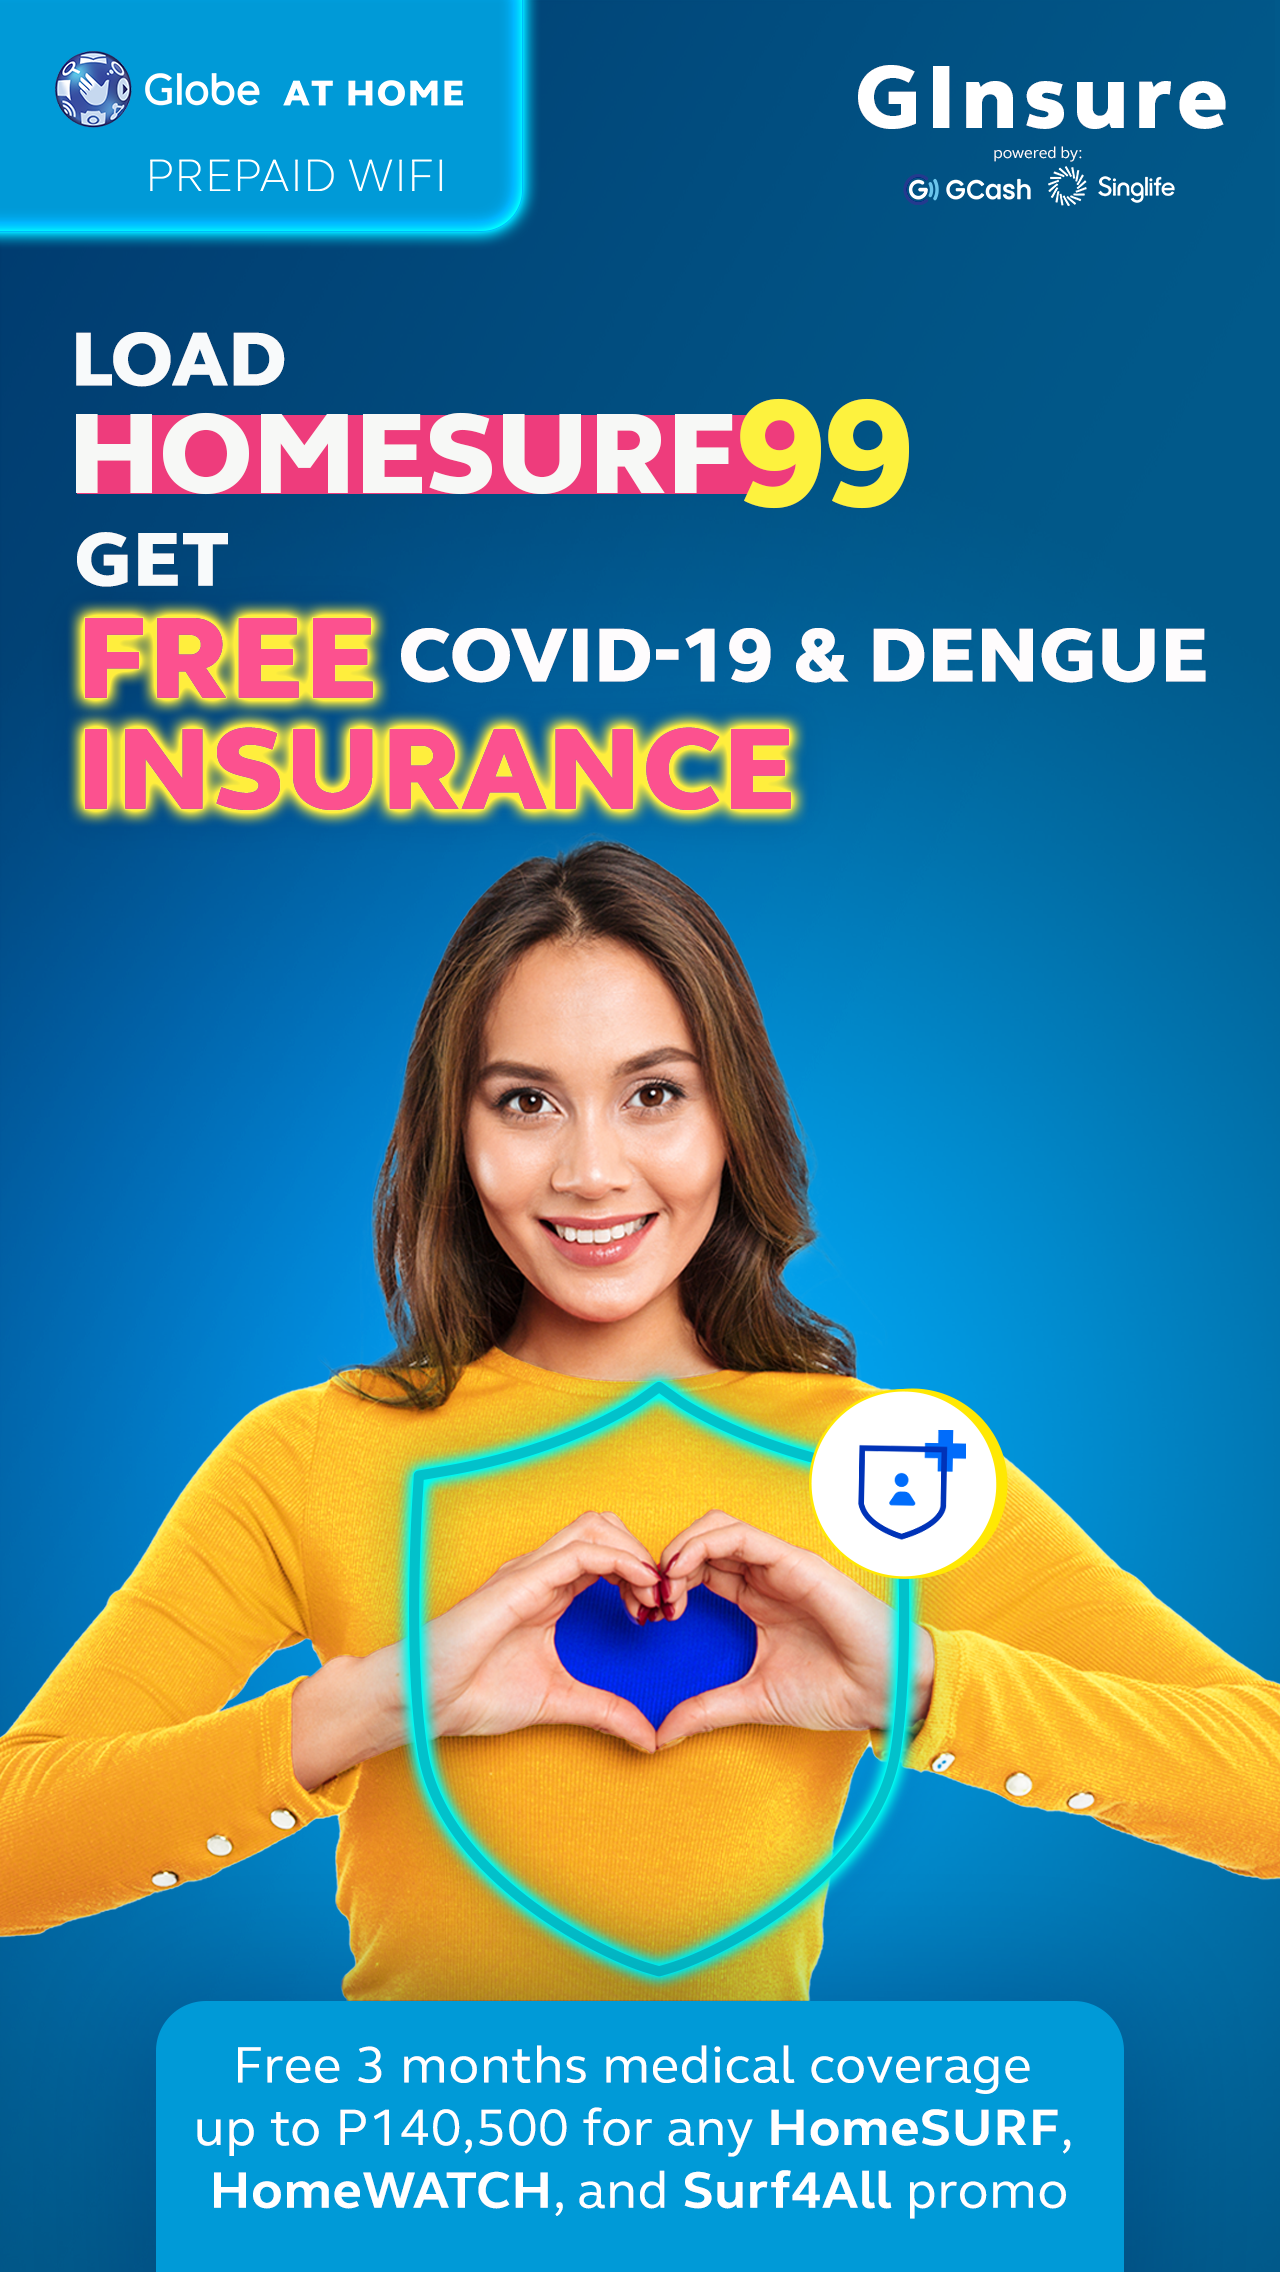 #ExtraCareAtHome: Free medical insurance against Covid with Globe At Home, GCash and Singlife